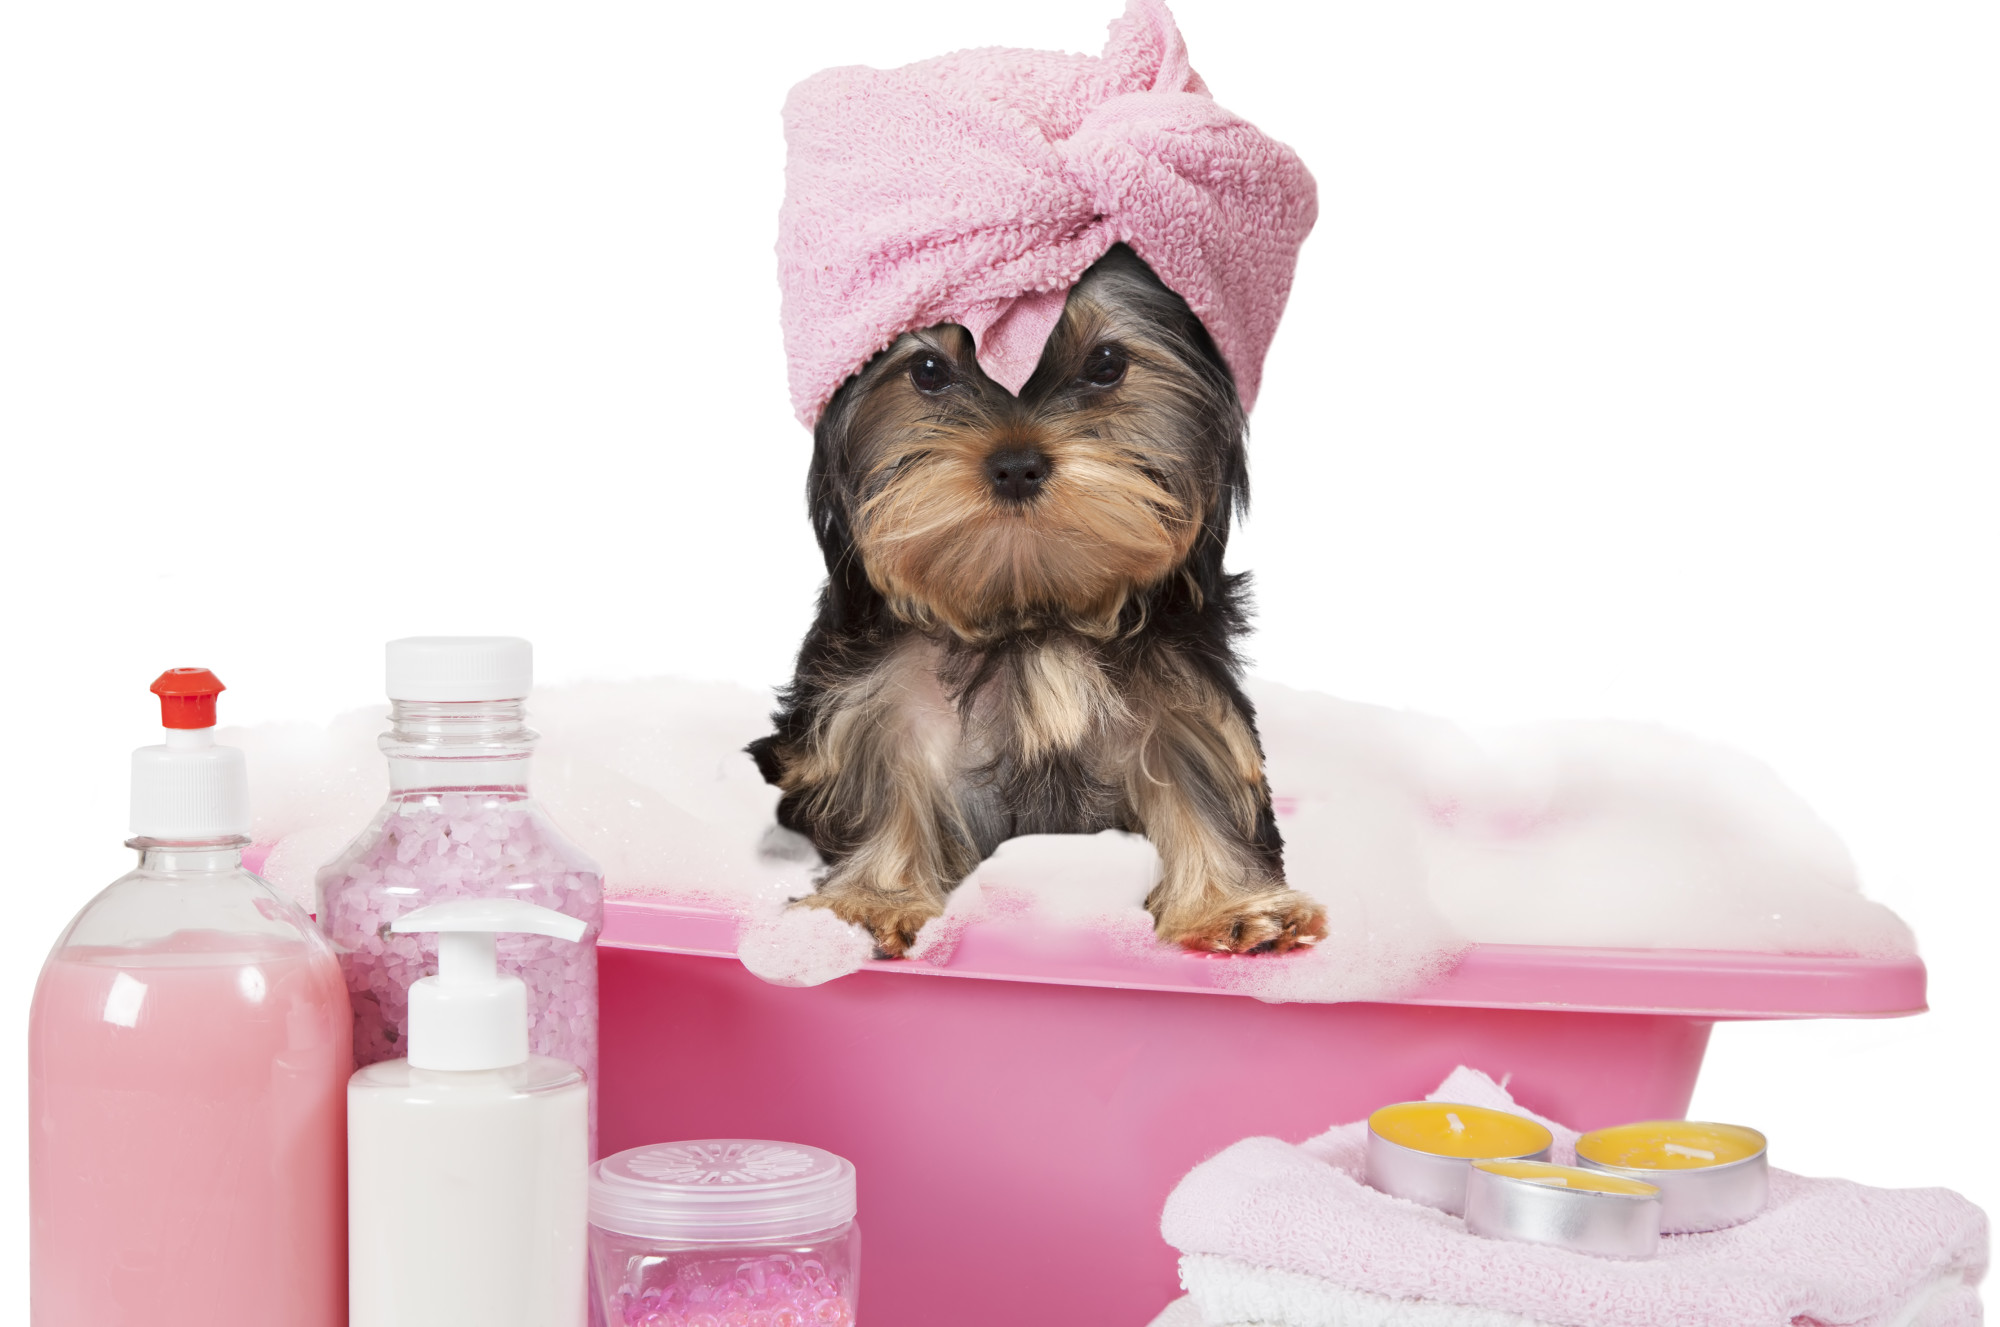 How to Treat Yeast Infections in Dogs: The Methods Explained